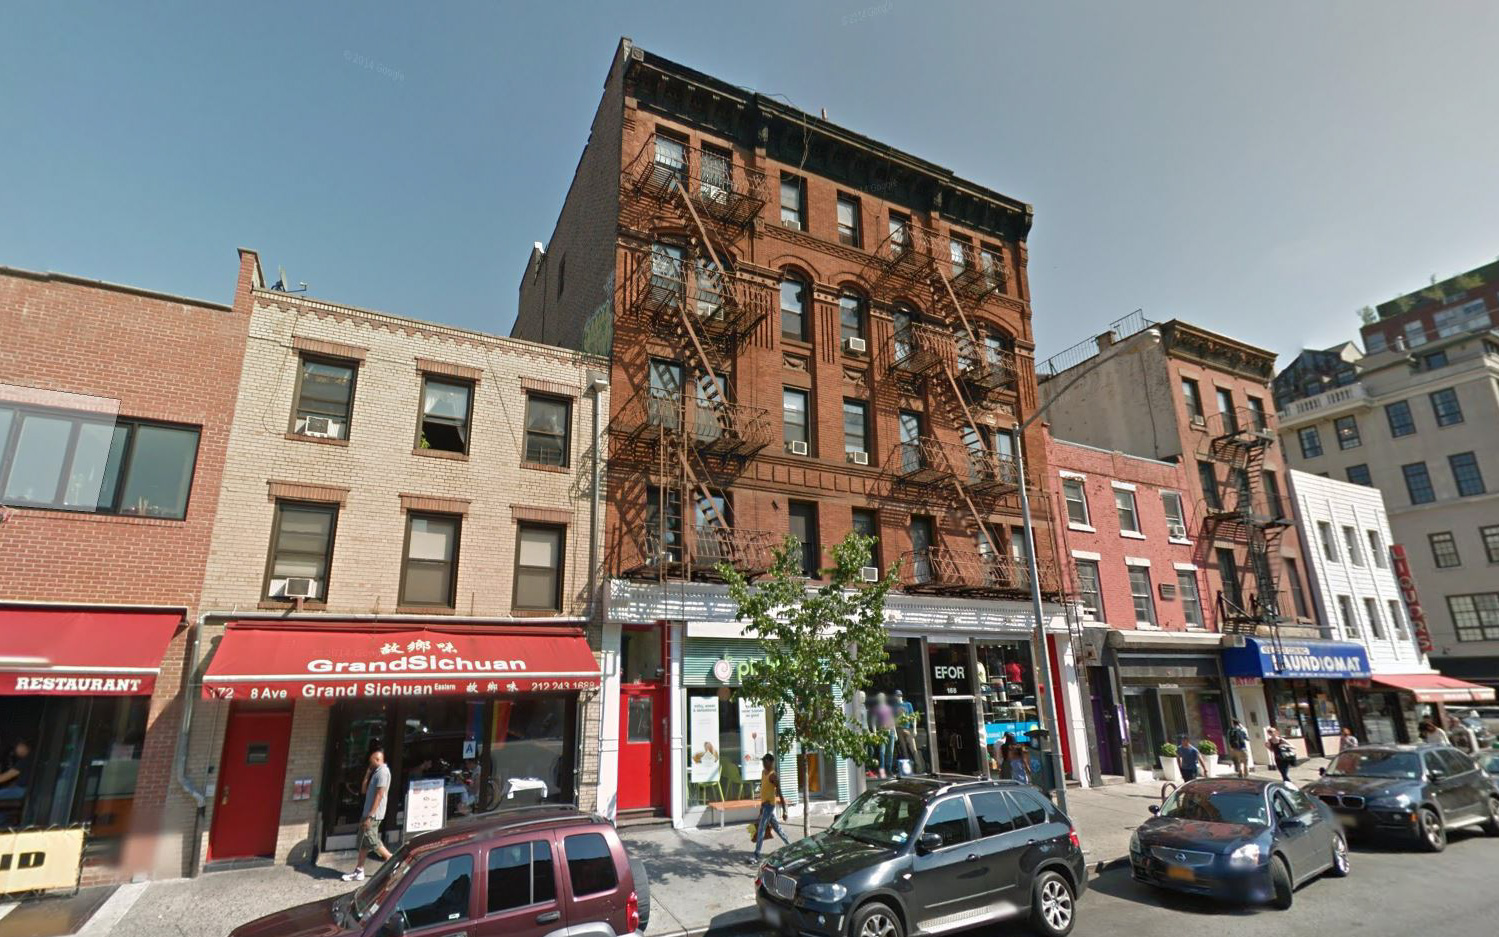 170 8th Street in Chelsea, New York City